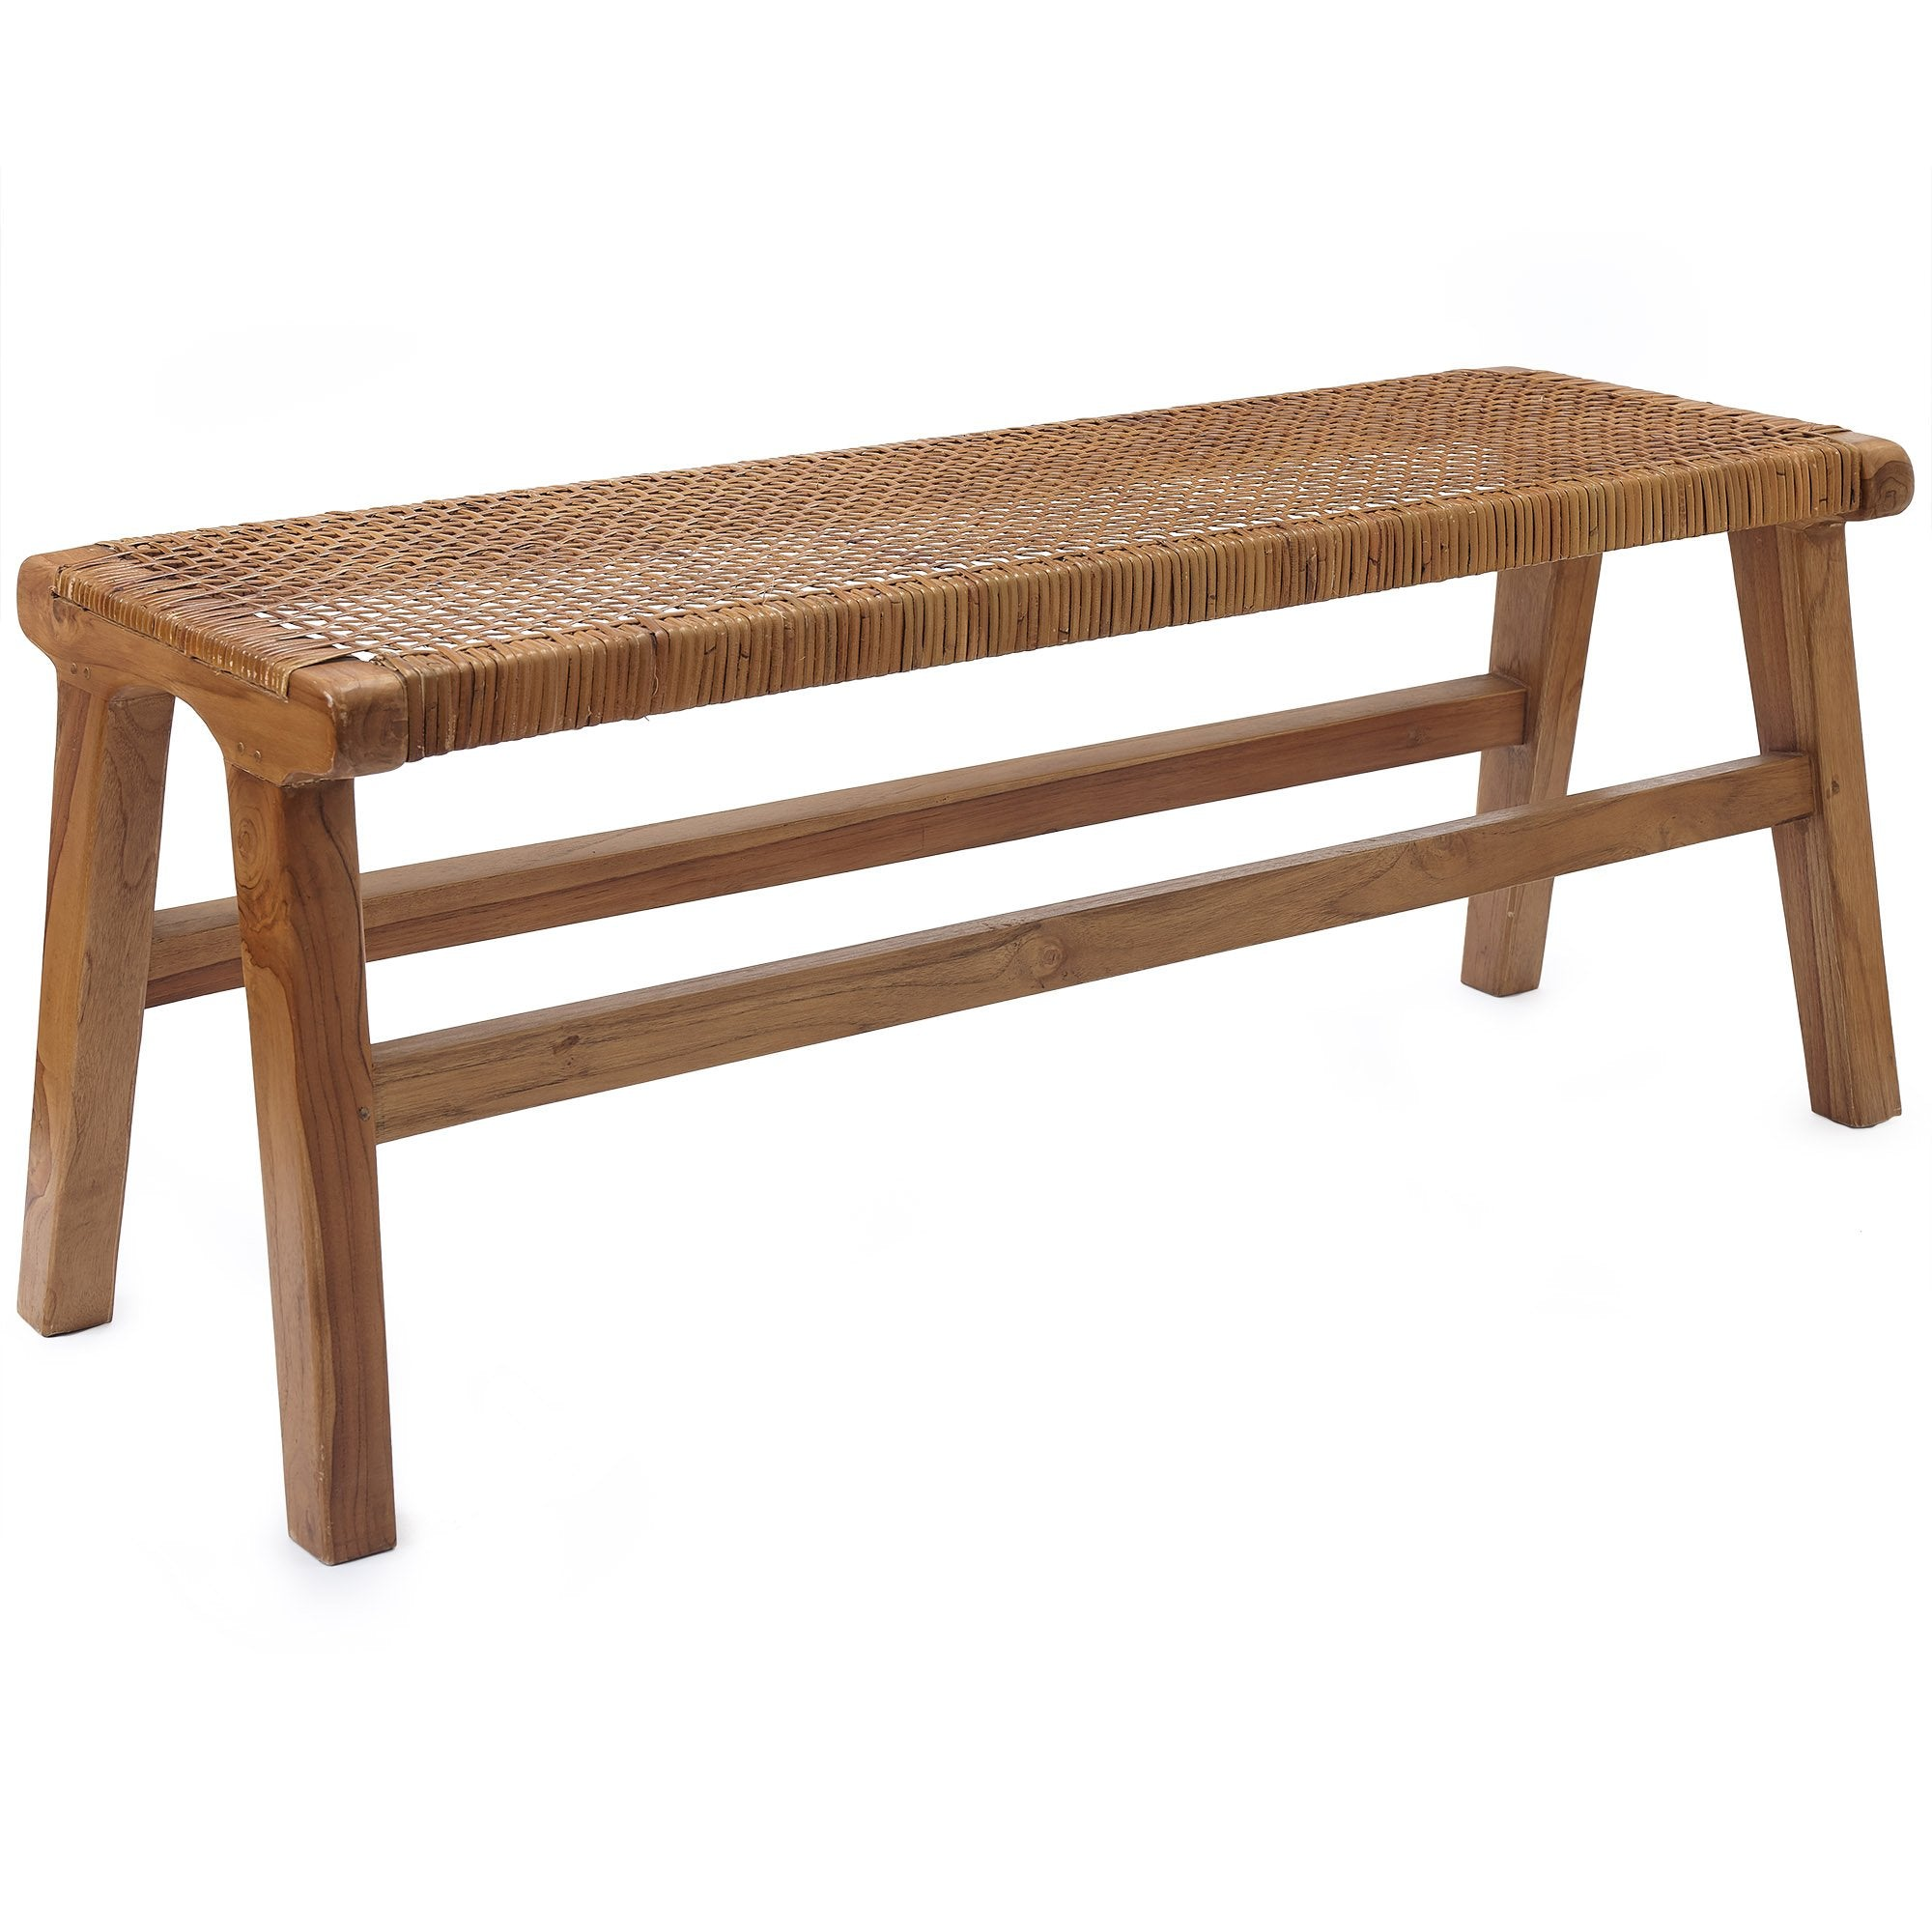 Bakaru bench, natural, 100% rattan & 100% teak wood